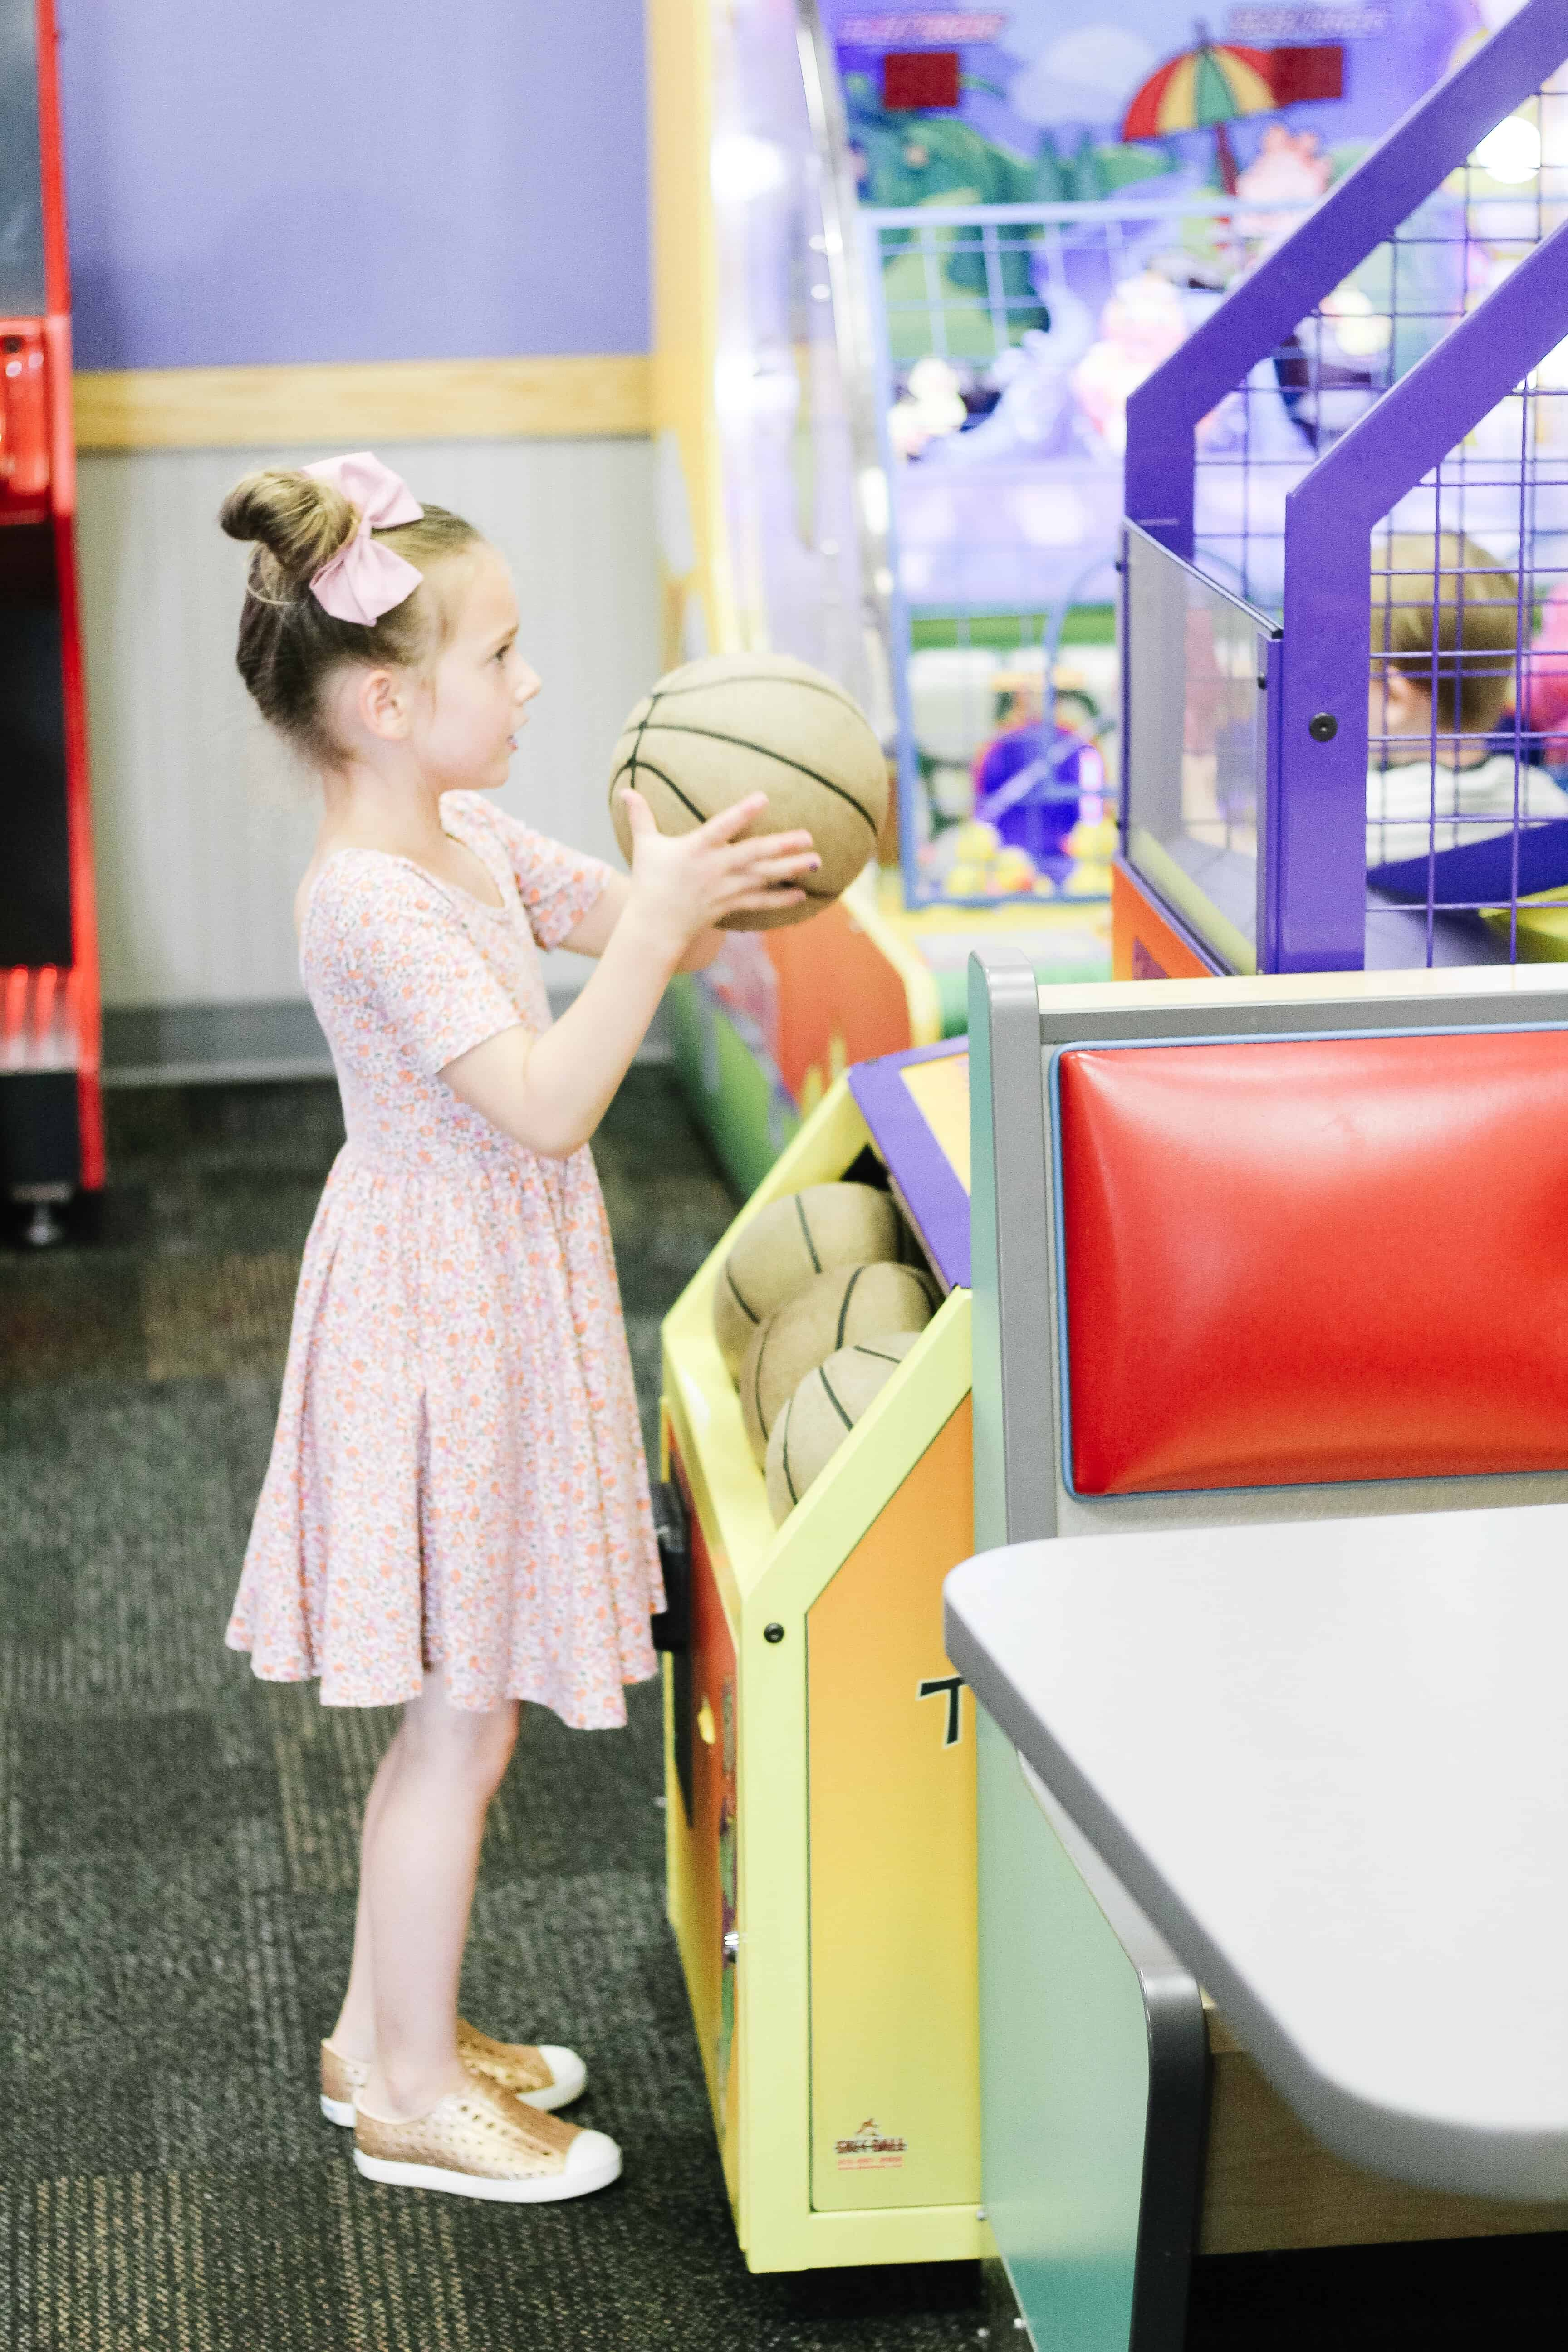 Toddler Playing Chuck E. Cheese Games